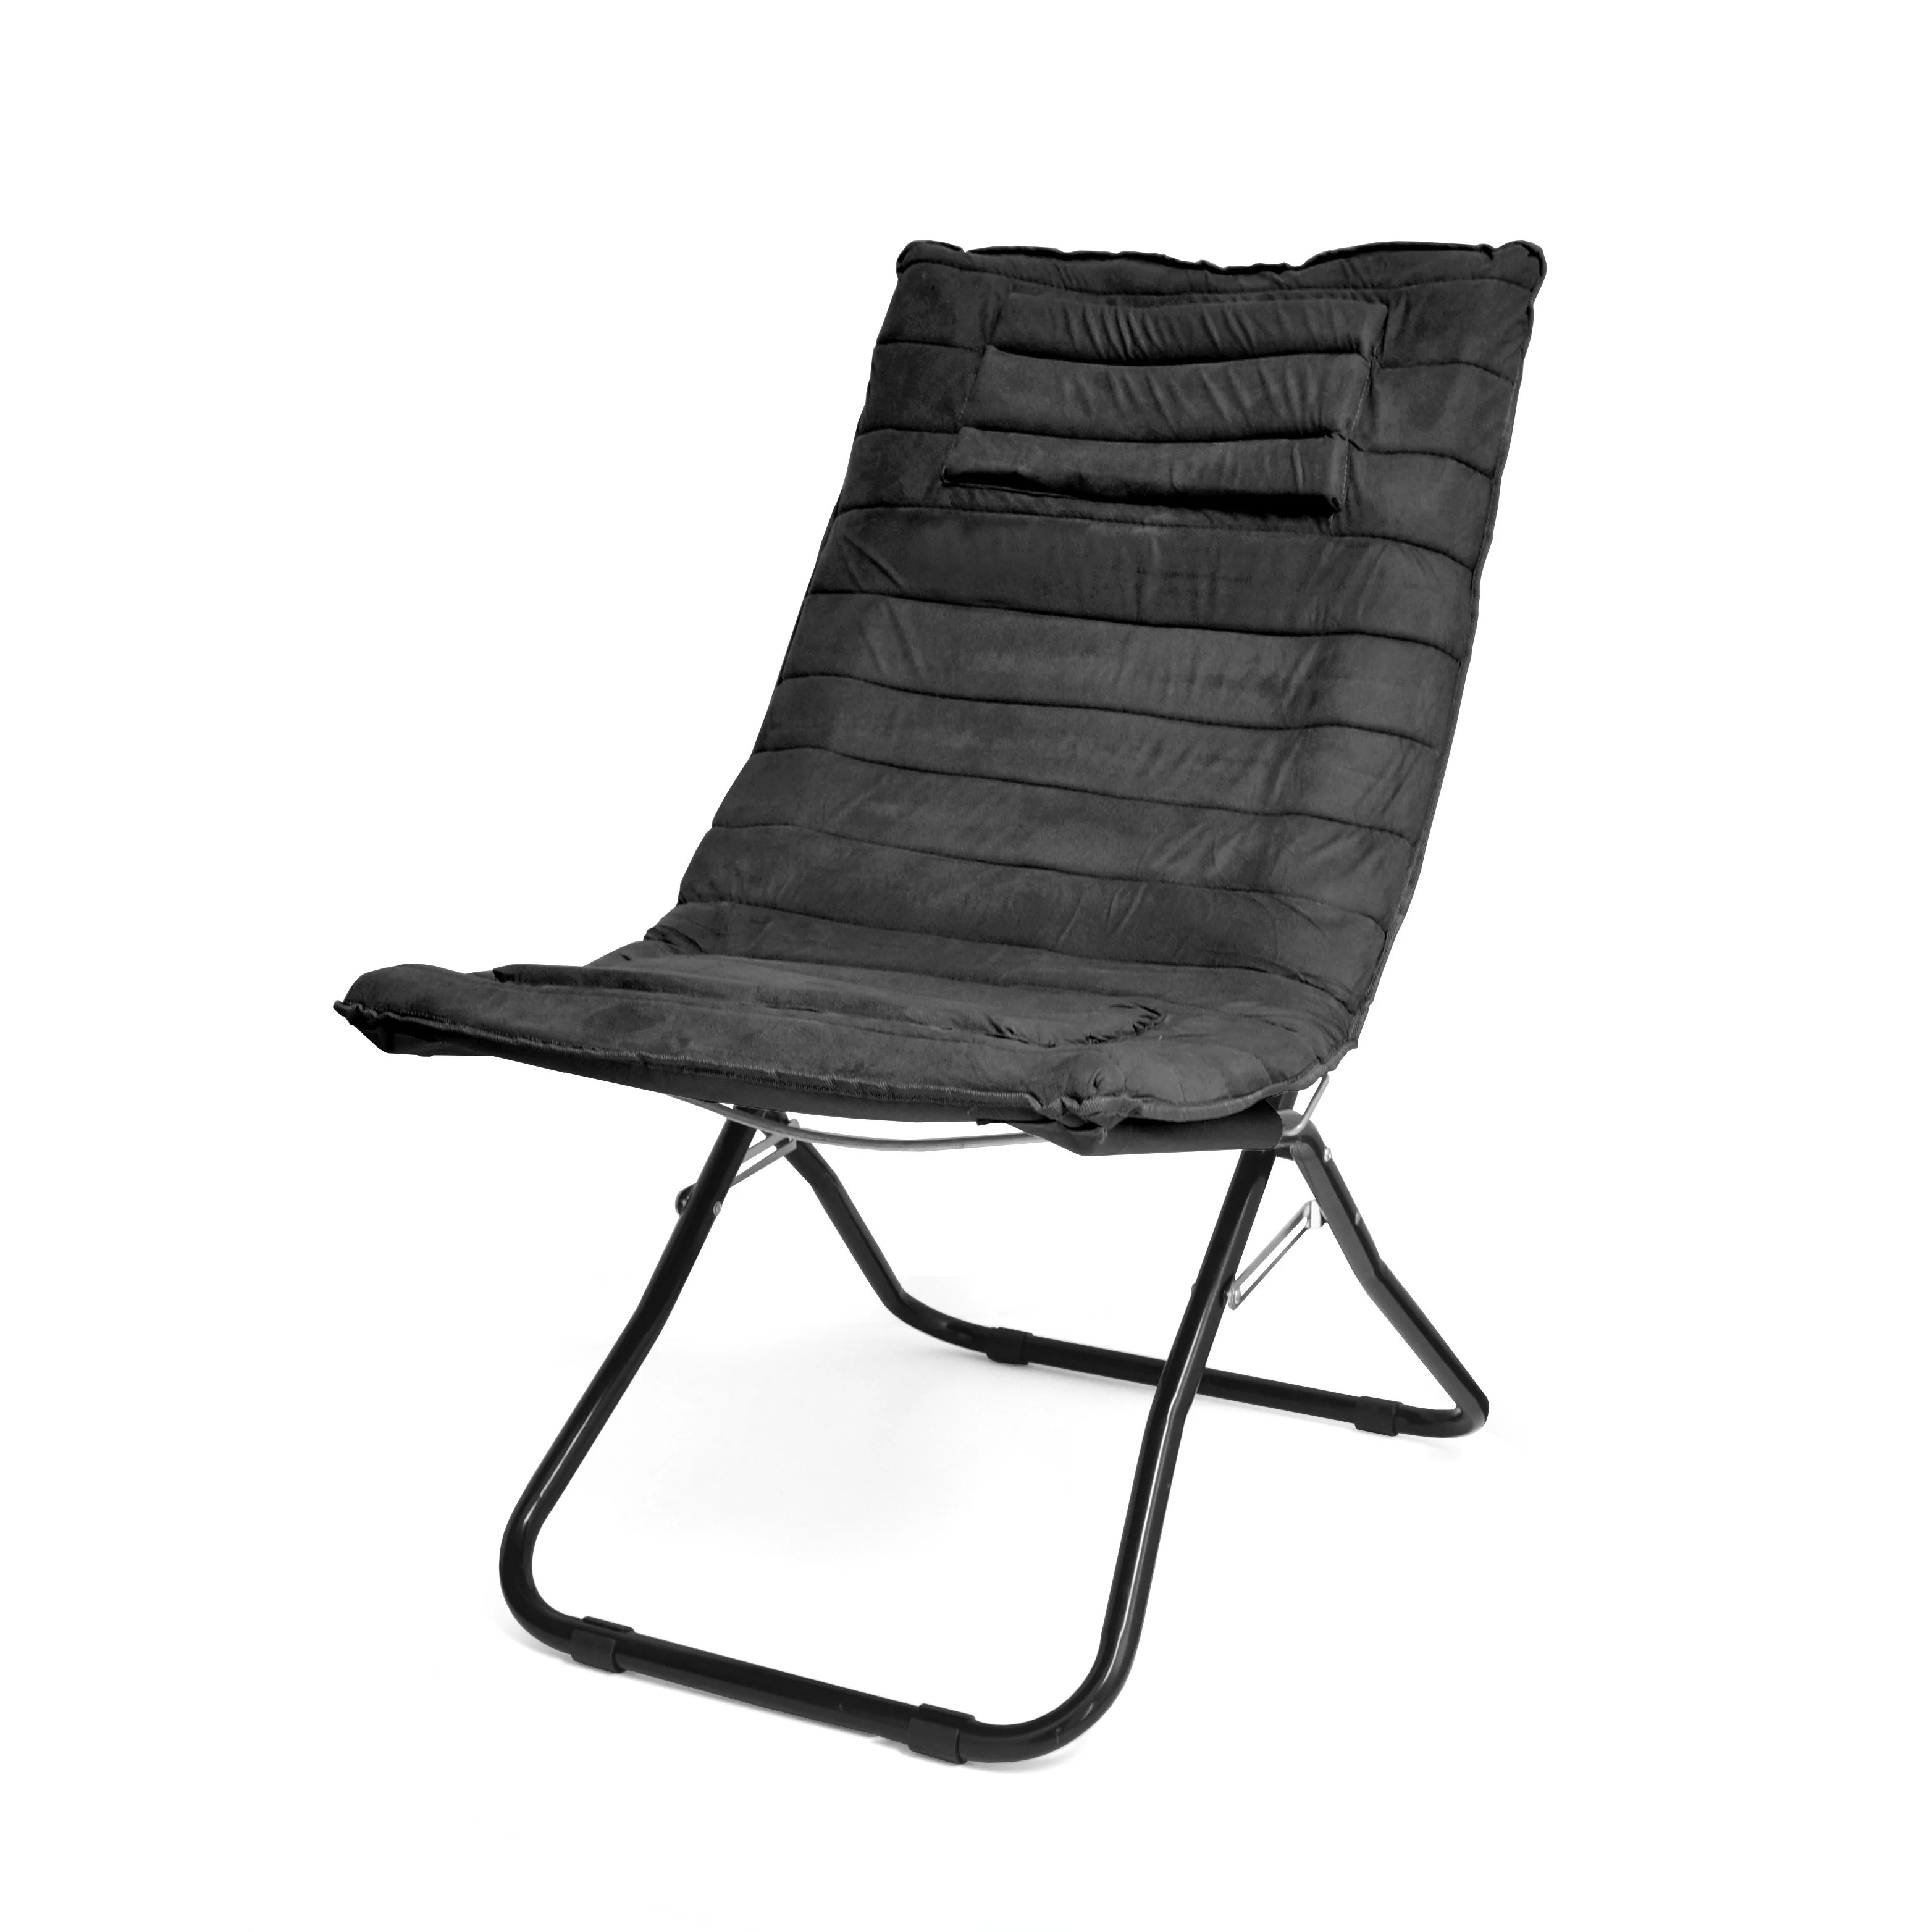 Urban Shop Memory Foam Lounge Chair  Reviews  Wayfair